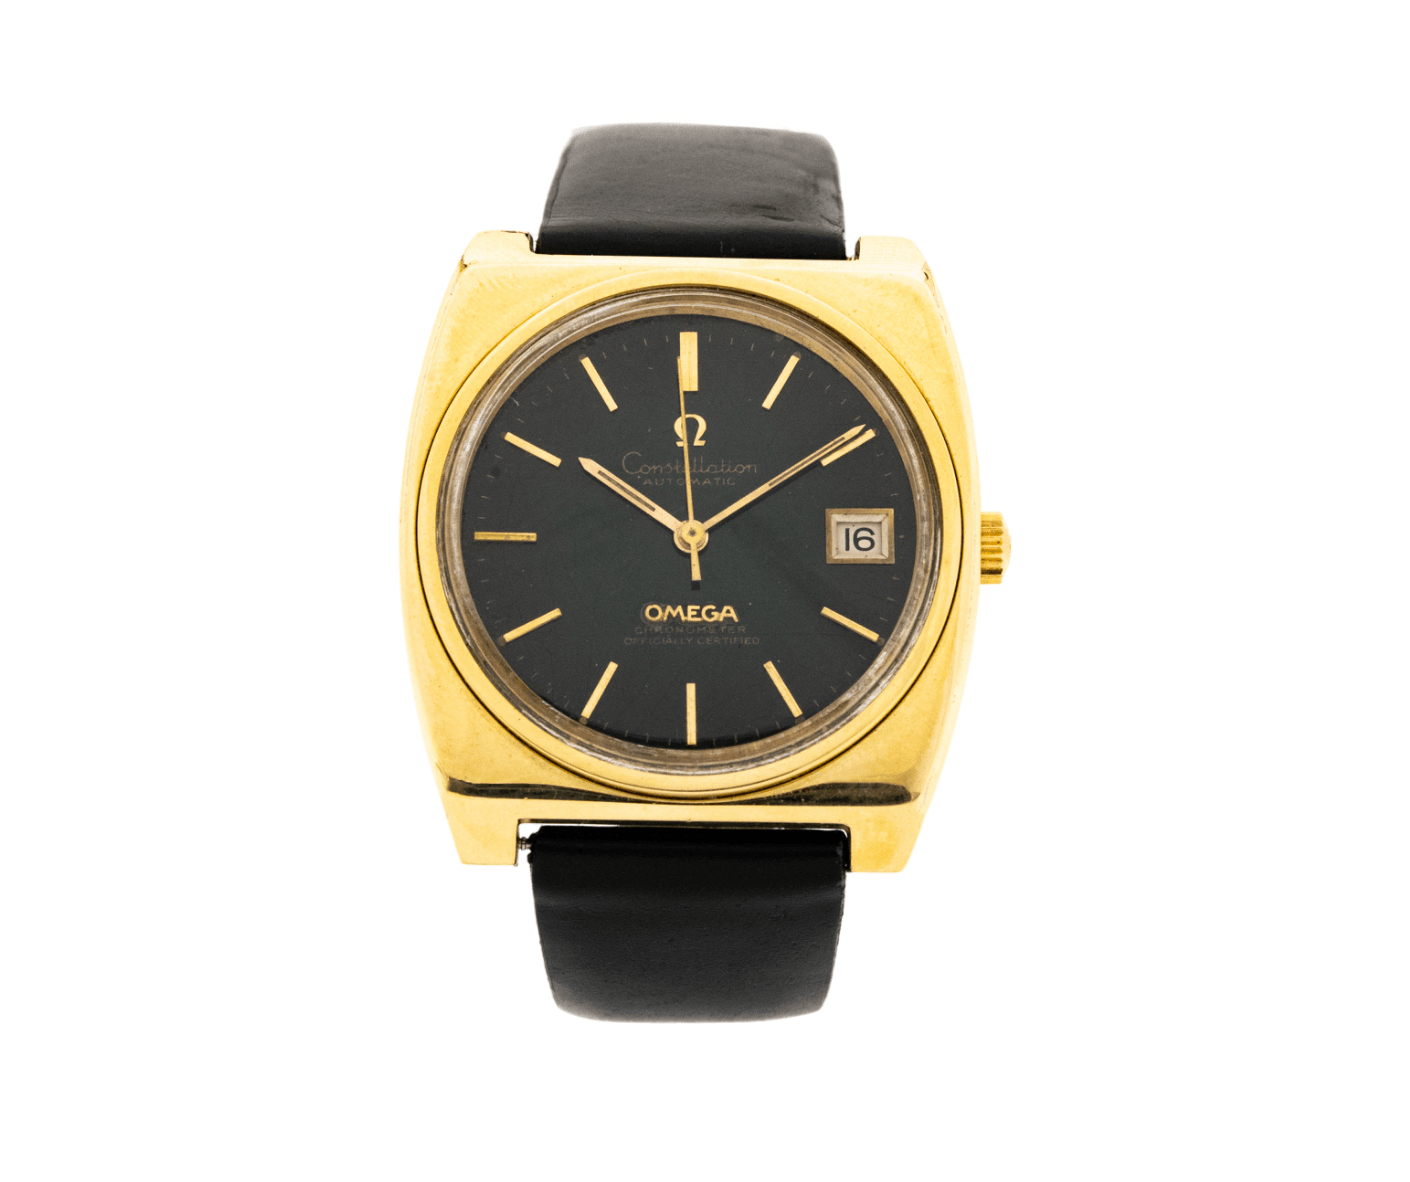 Vintage Omega Constellation 166.063/168.048 Automatic Date 14kt Yellow Gold Shell Watch